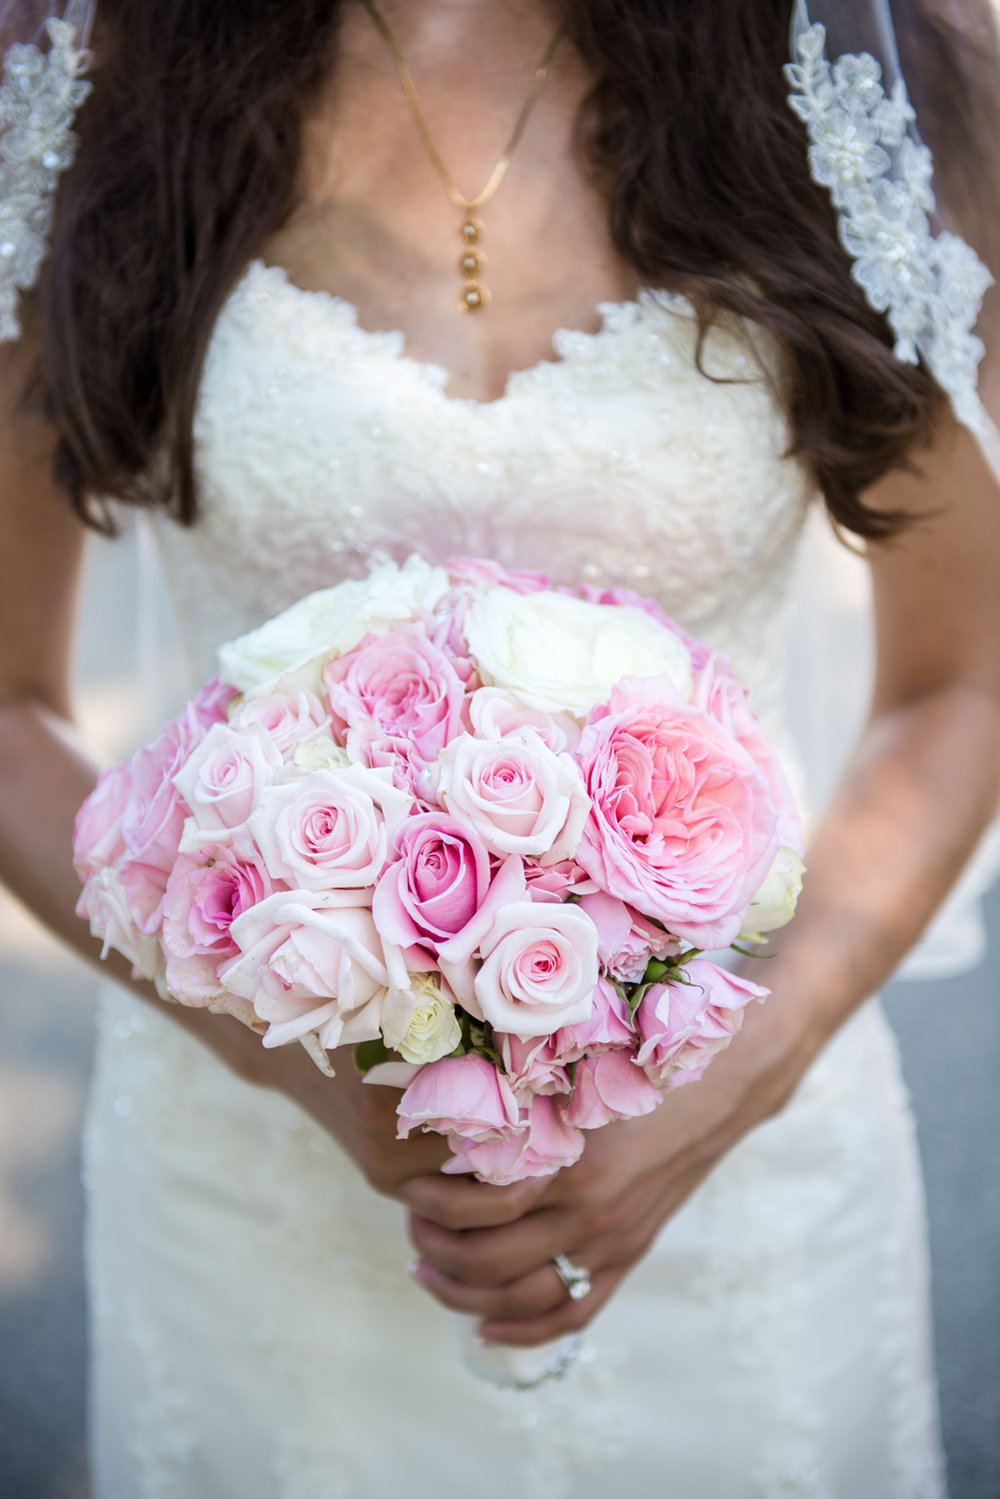 bride-bouquet-flowers copy.jpg